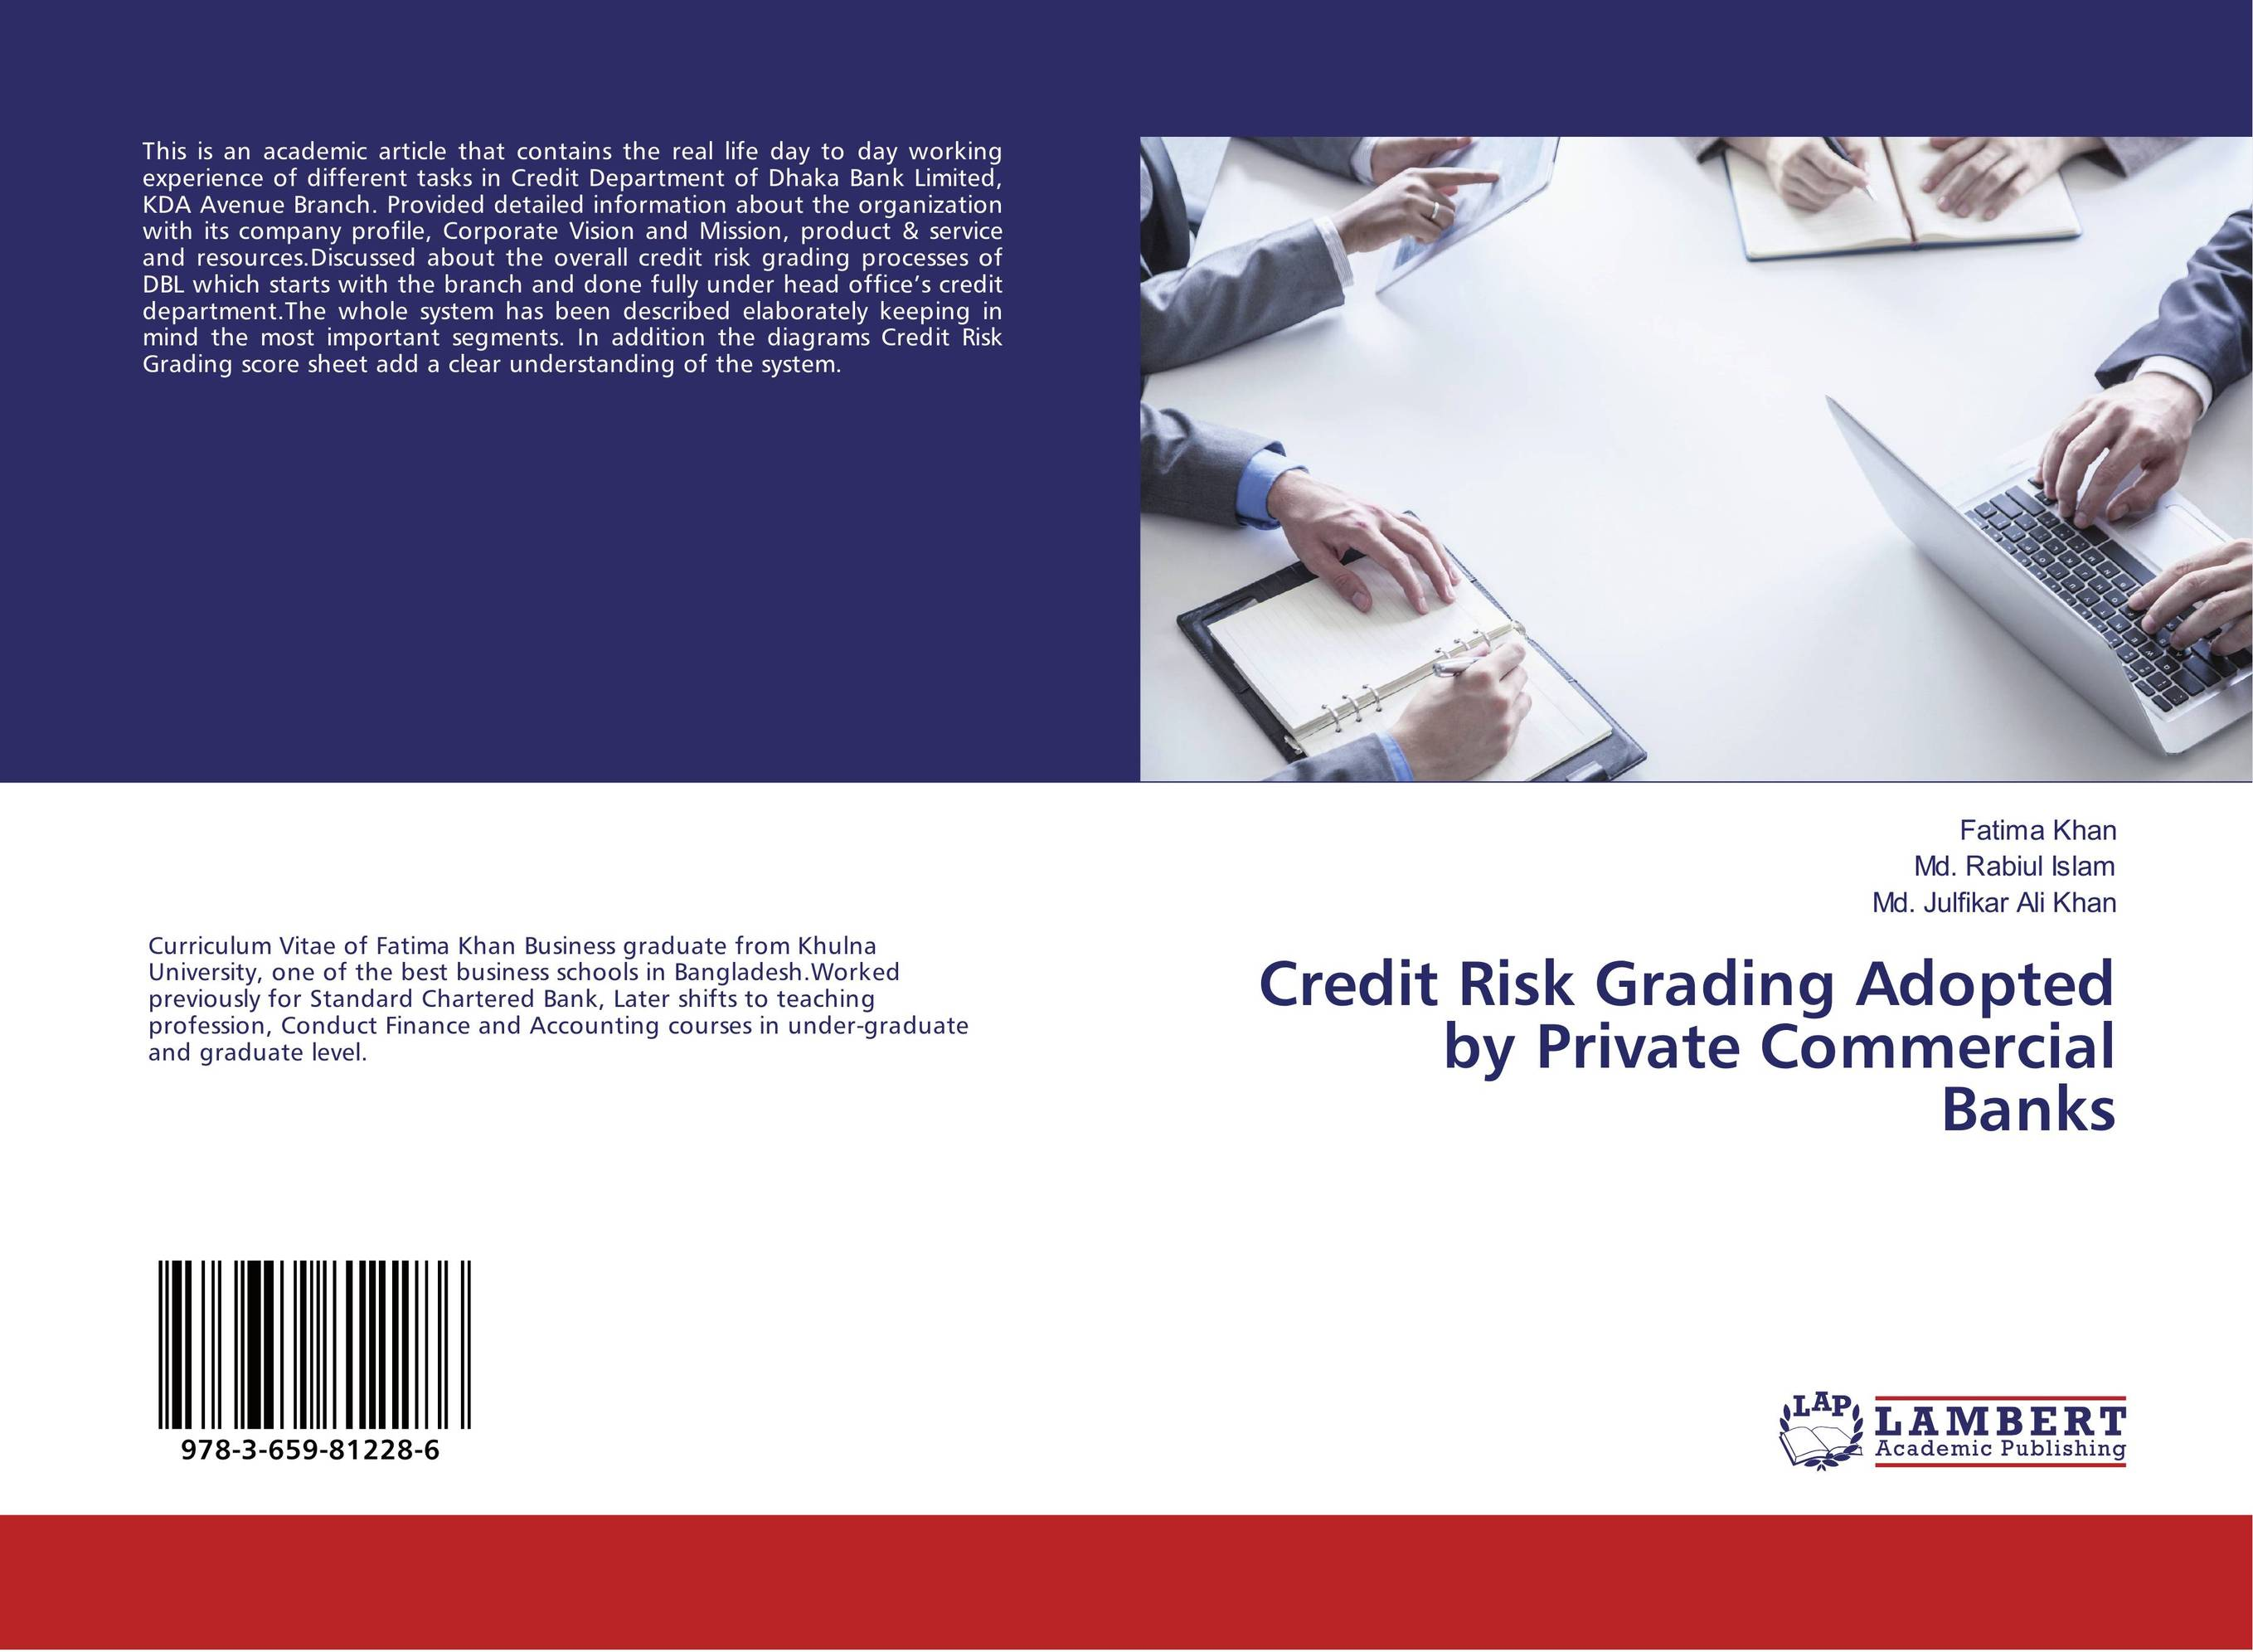 Credit Risk Grading Adopted by Private Commercial Banks